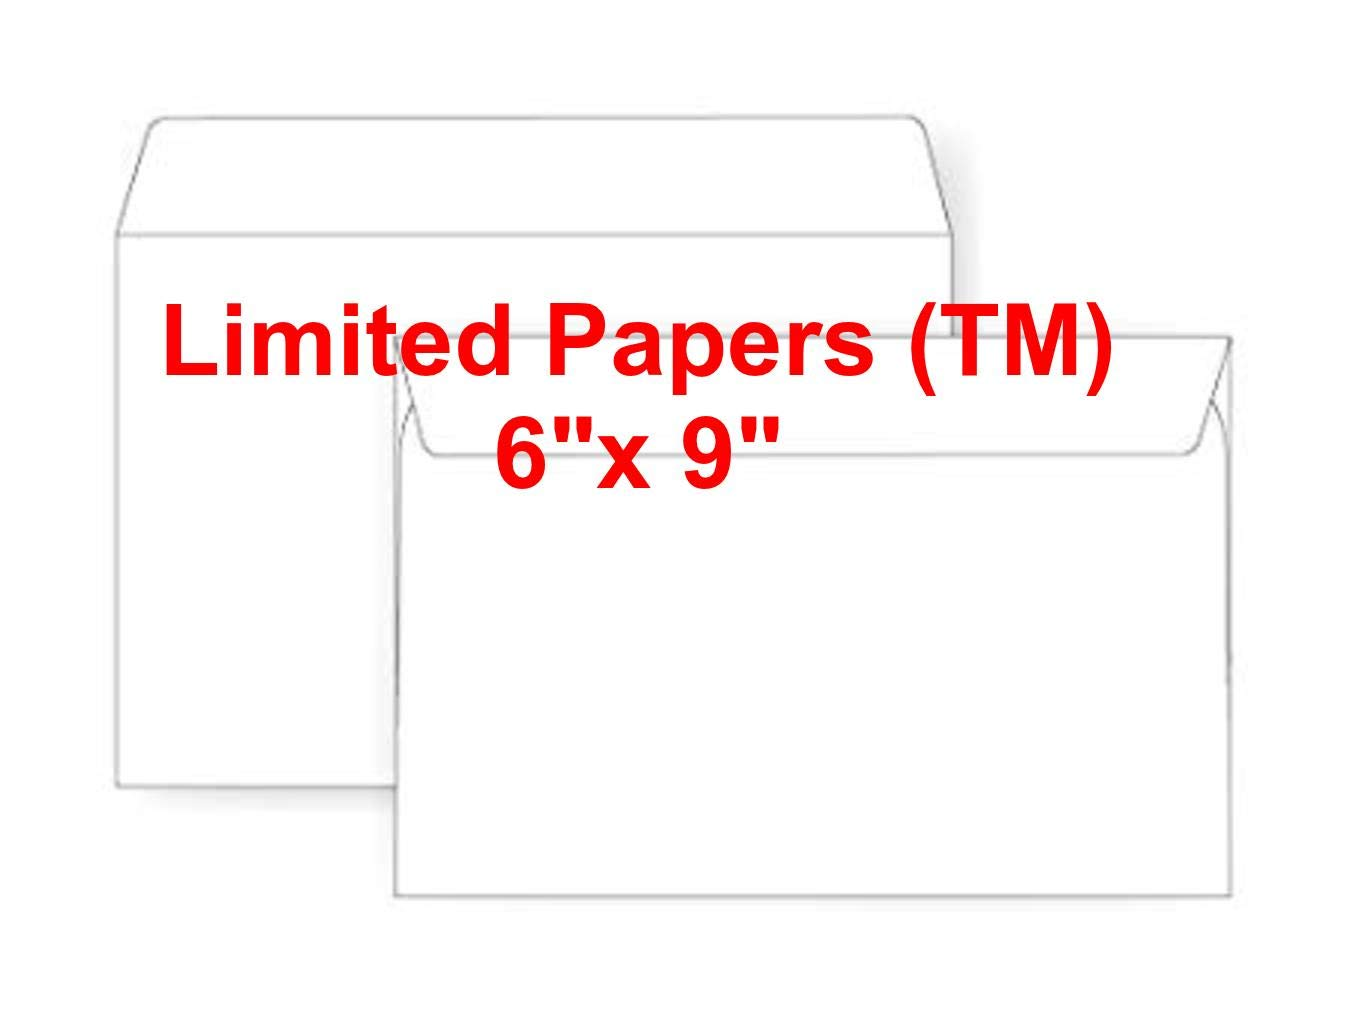 Open Side- 6 x 9 6 x 9 Booklet Envelope 2500 24# White Wove - Jumbo Envelope Series TM Limited Papers